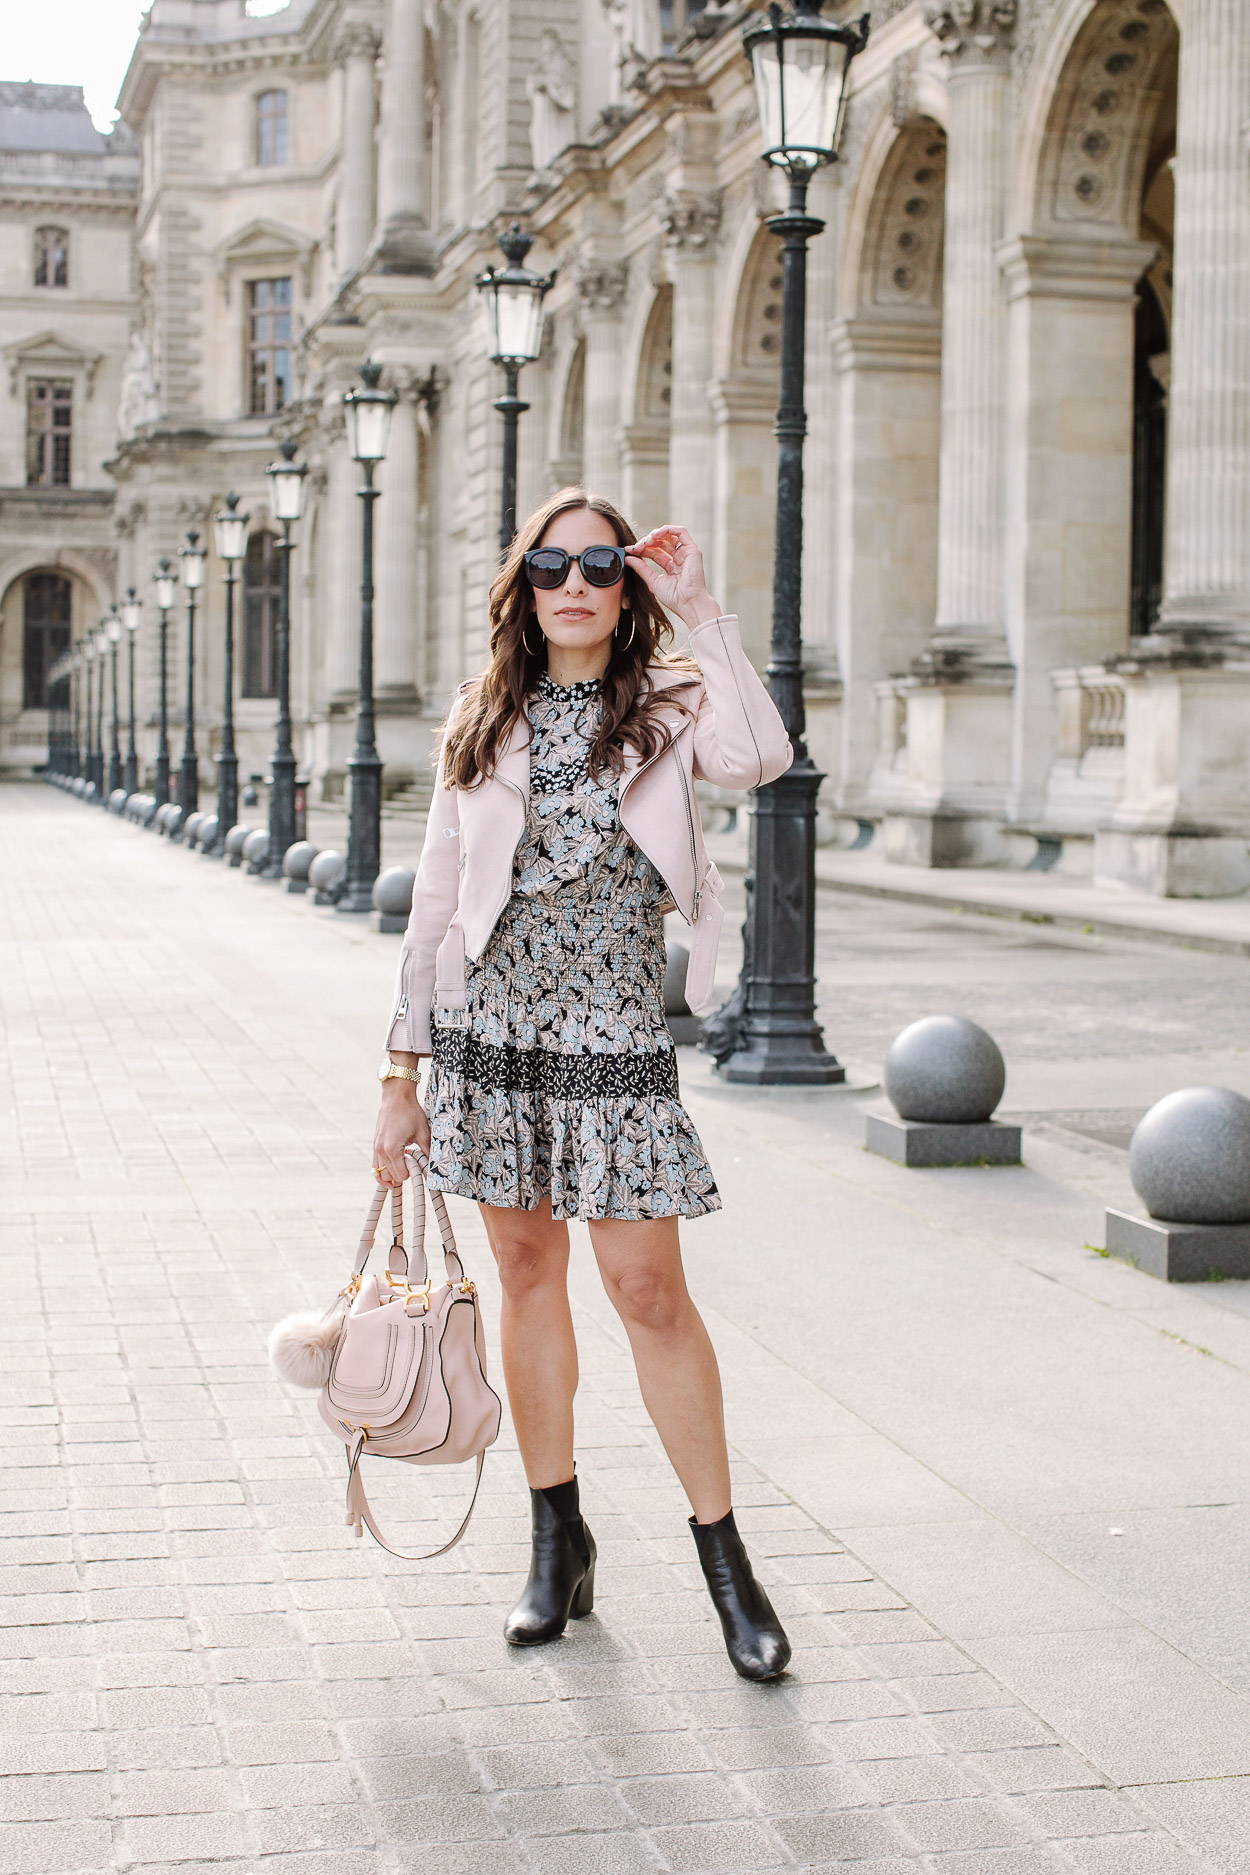 Silk floral dress worn at the Louvre is the Rebecca Taylor Bijou Patchwork dress styled by blogger Amanda of A Glam Lifestyle blog and worn with blush moto jacket and blush nude Chloe Marcie bag